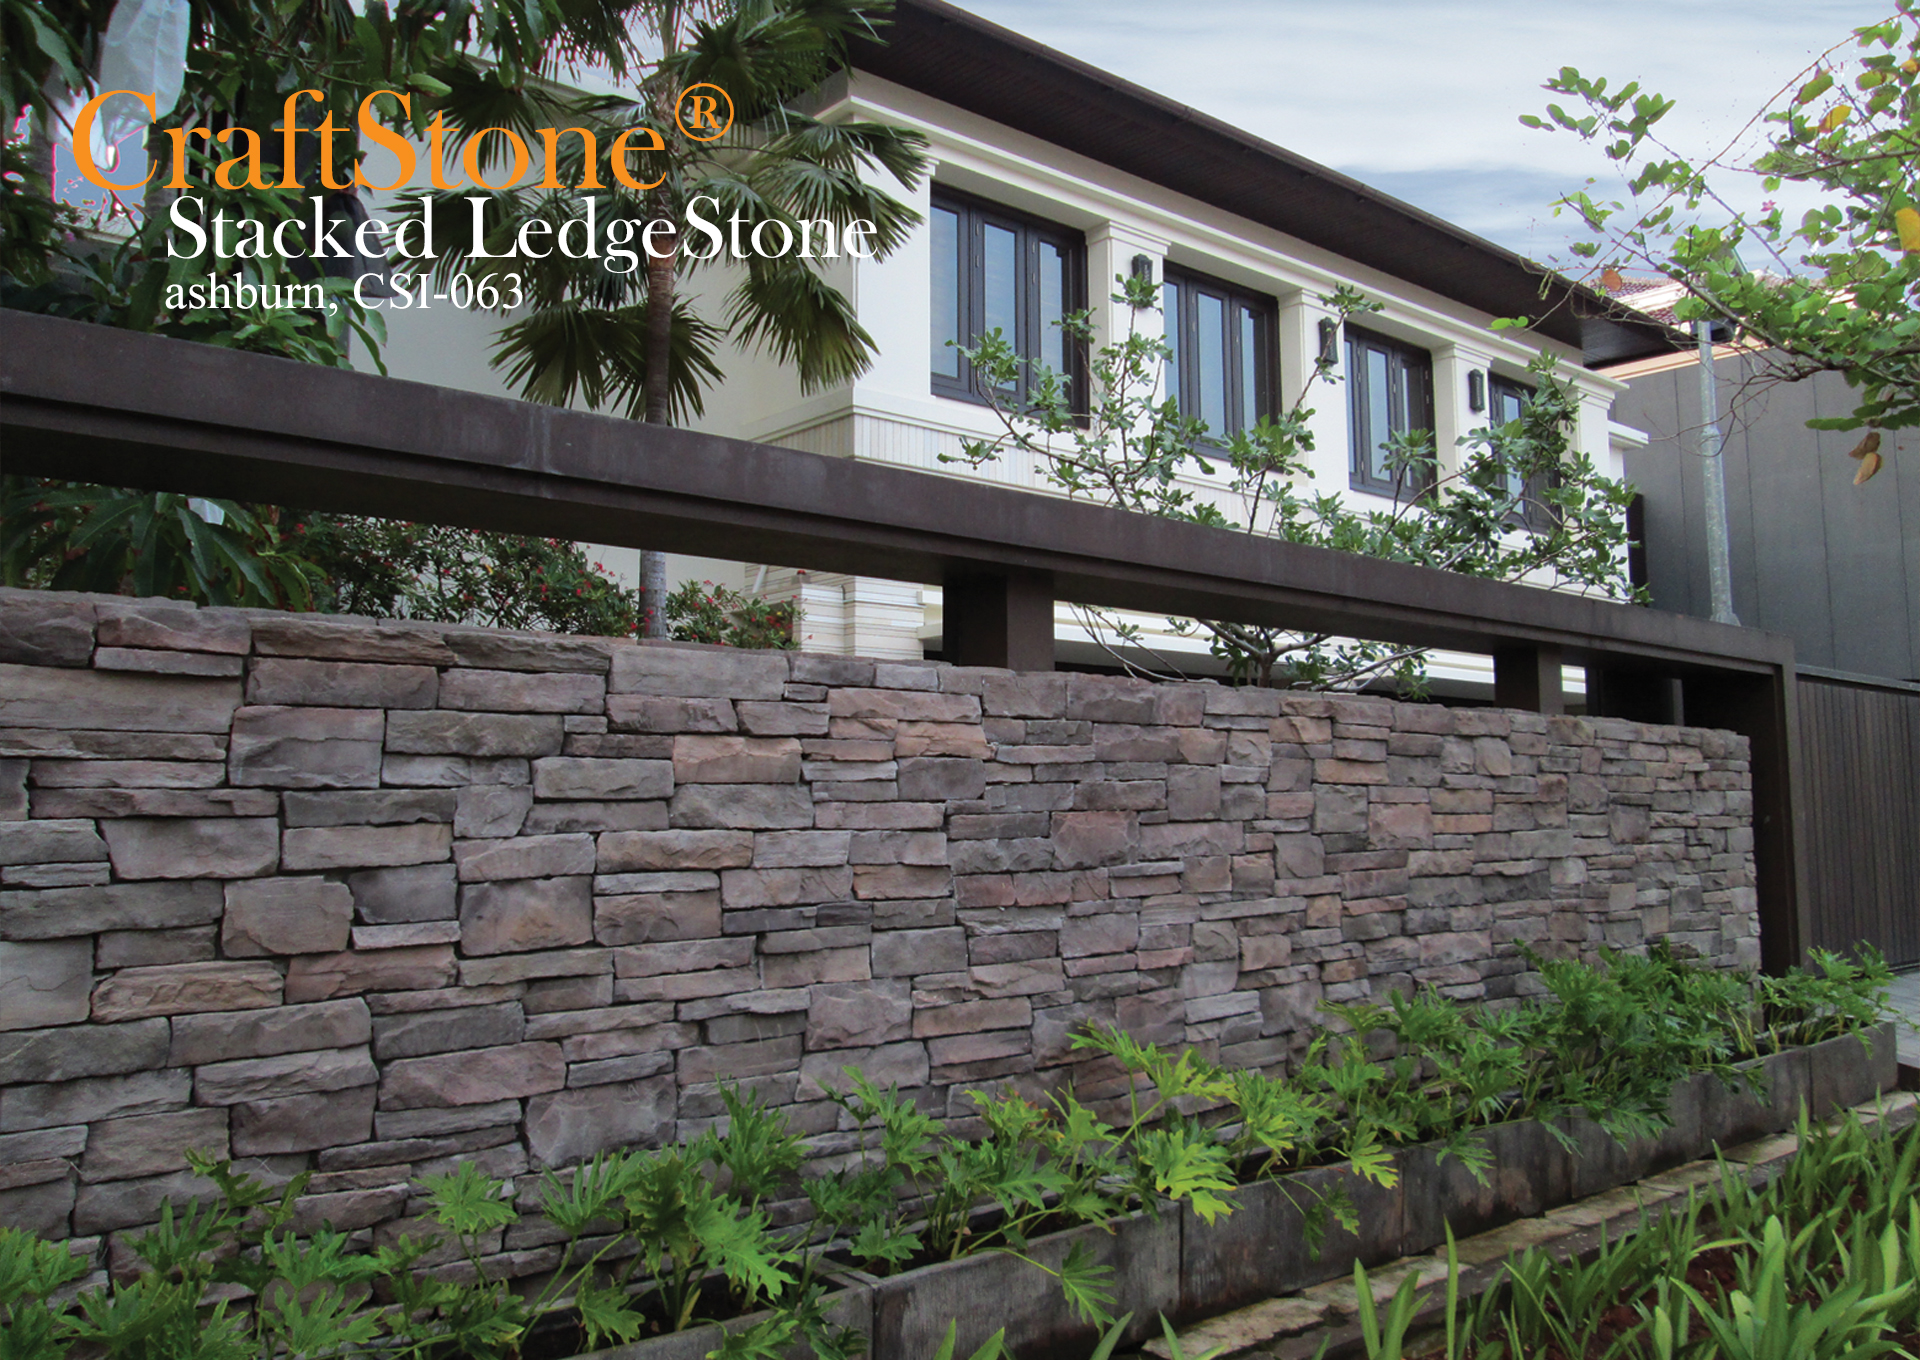 Stacked LedgeStone 2